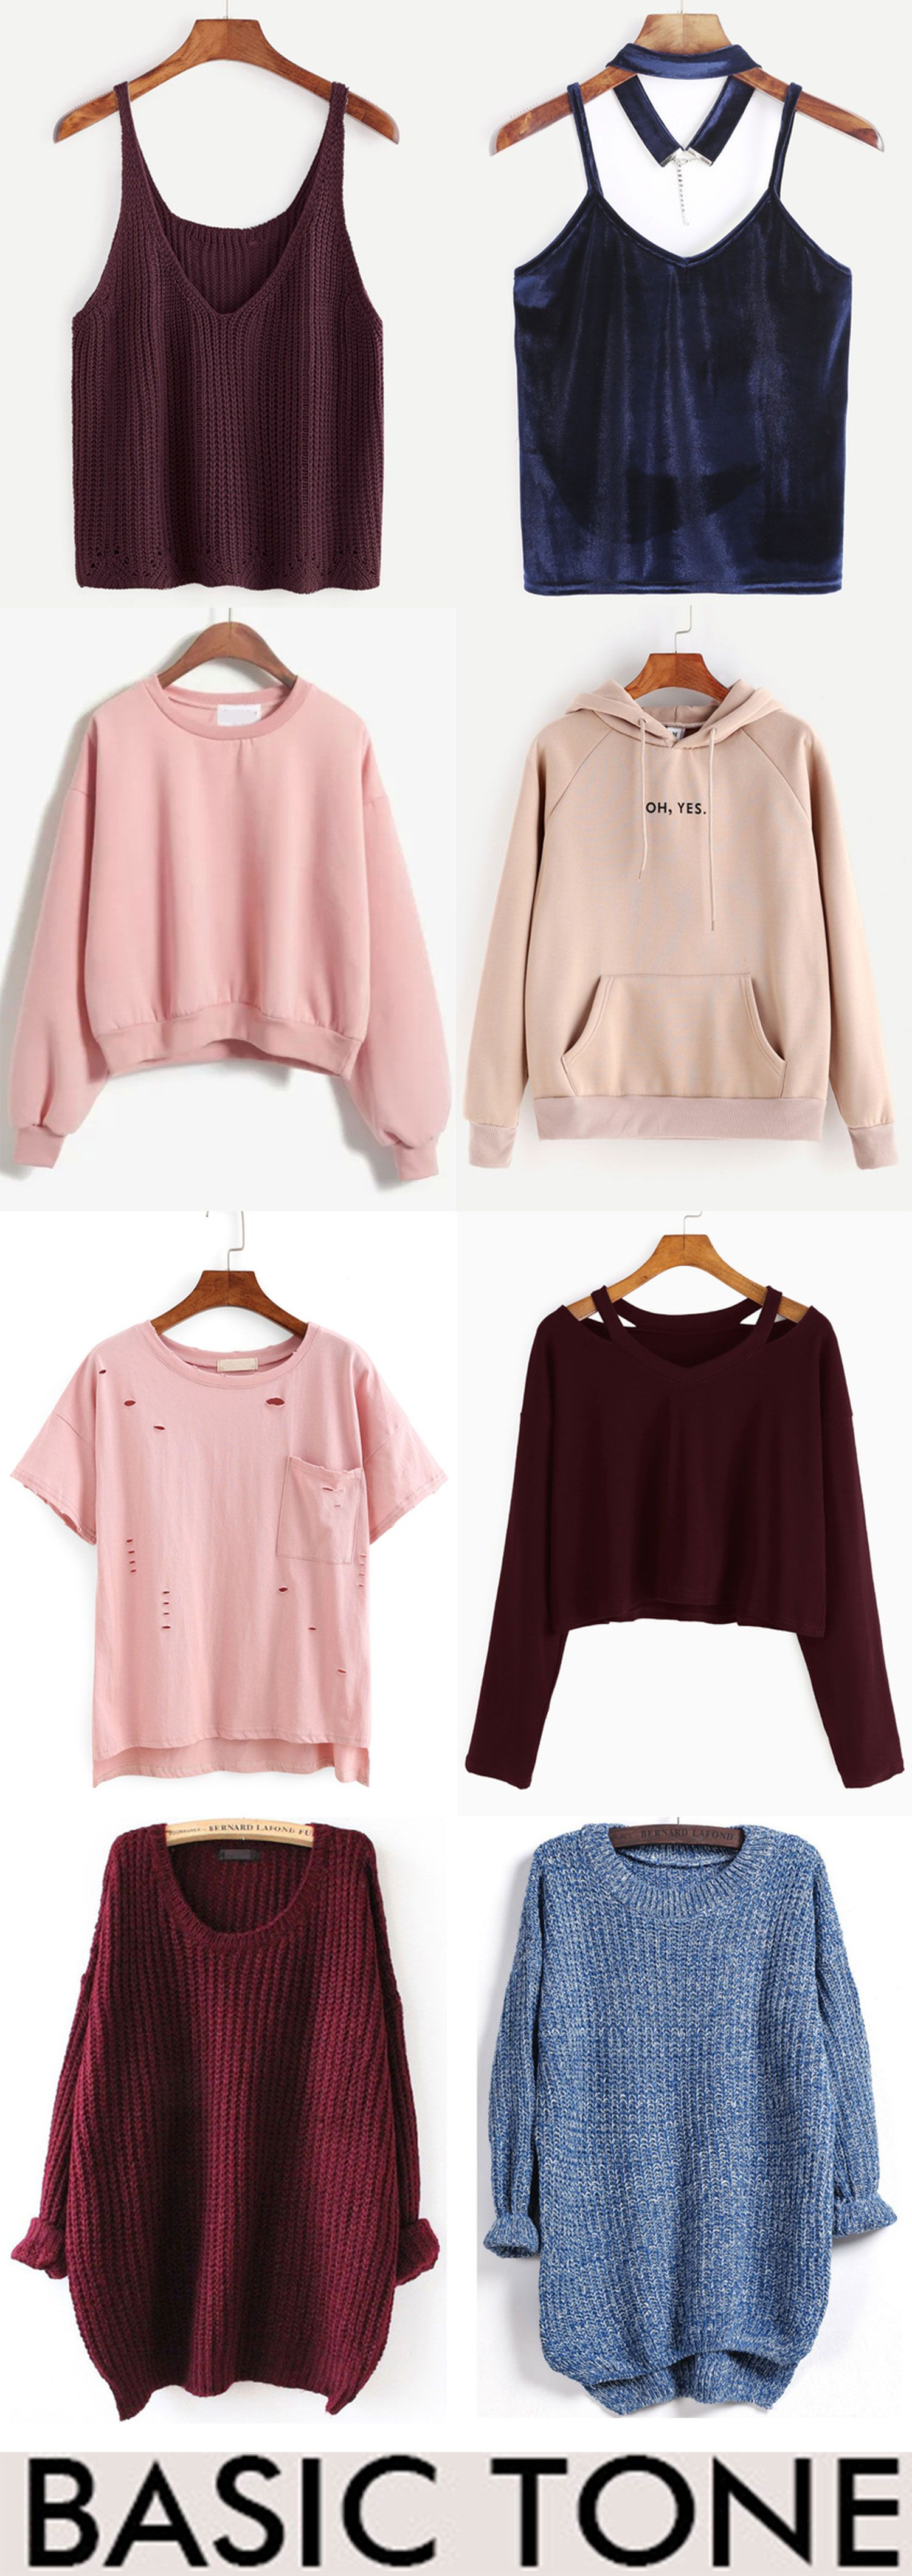 Basic Style - romwe.com  Fashion outfits, Cute outfits, Clothes